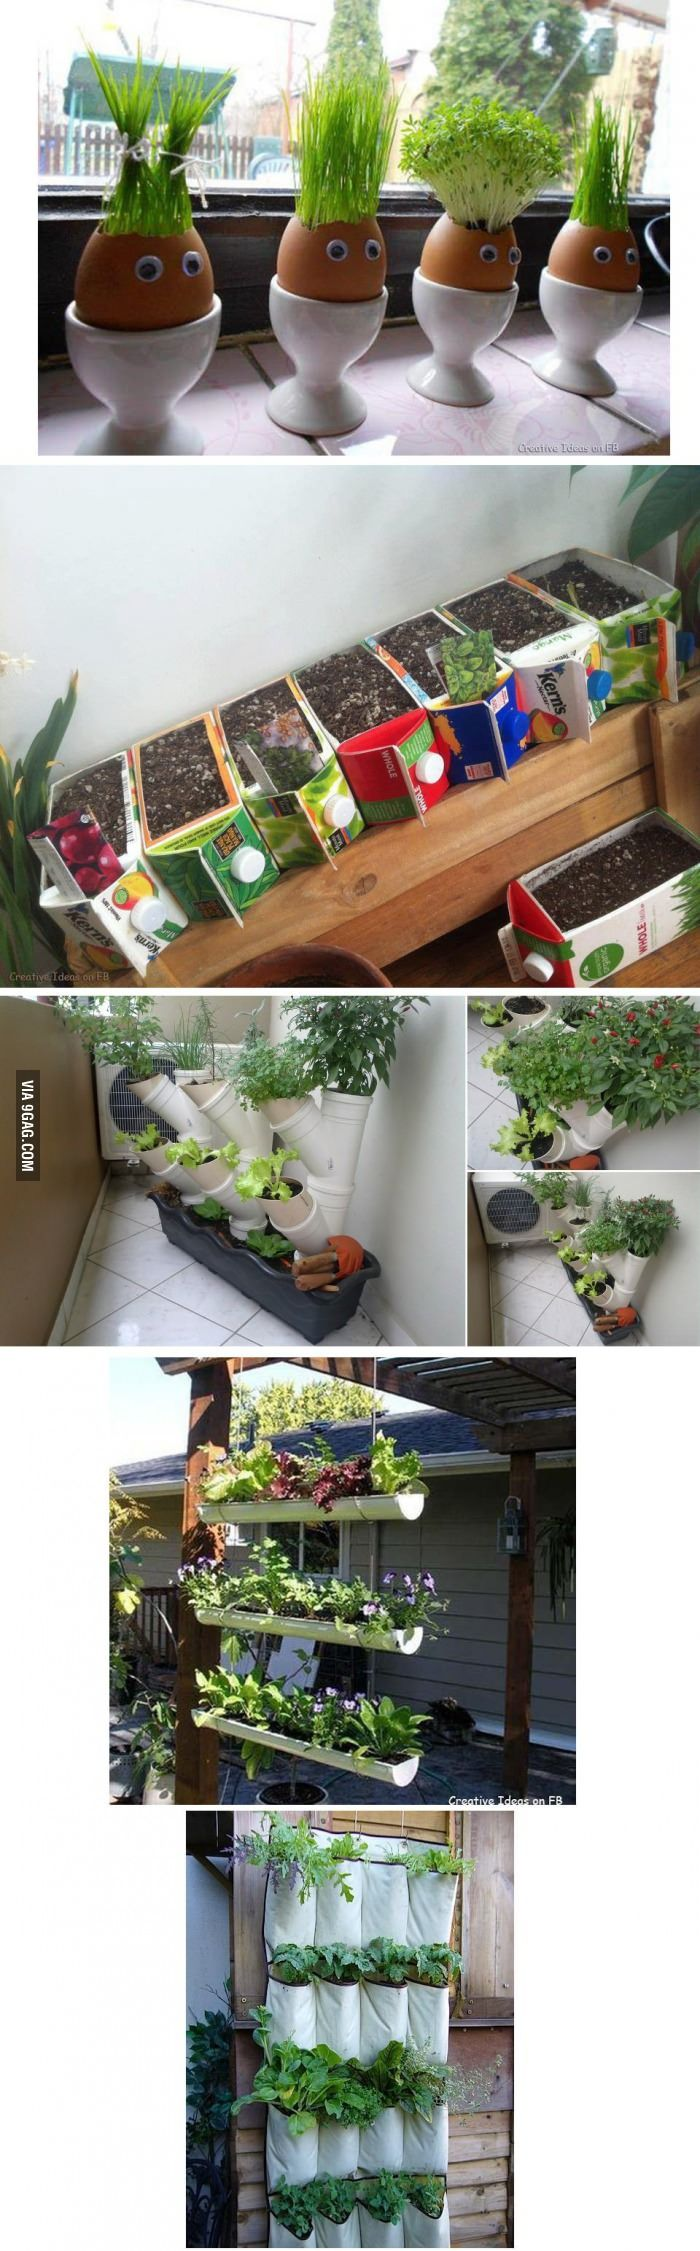 Great simple DIY ideas for planting at home